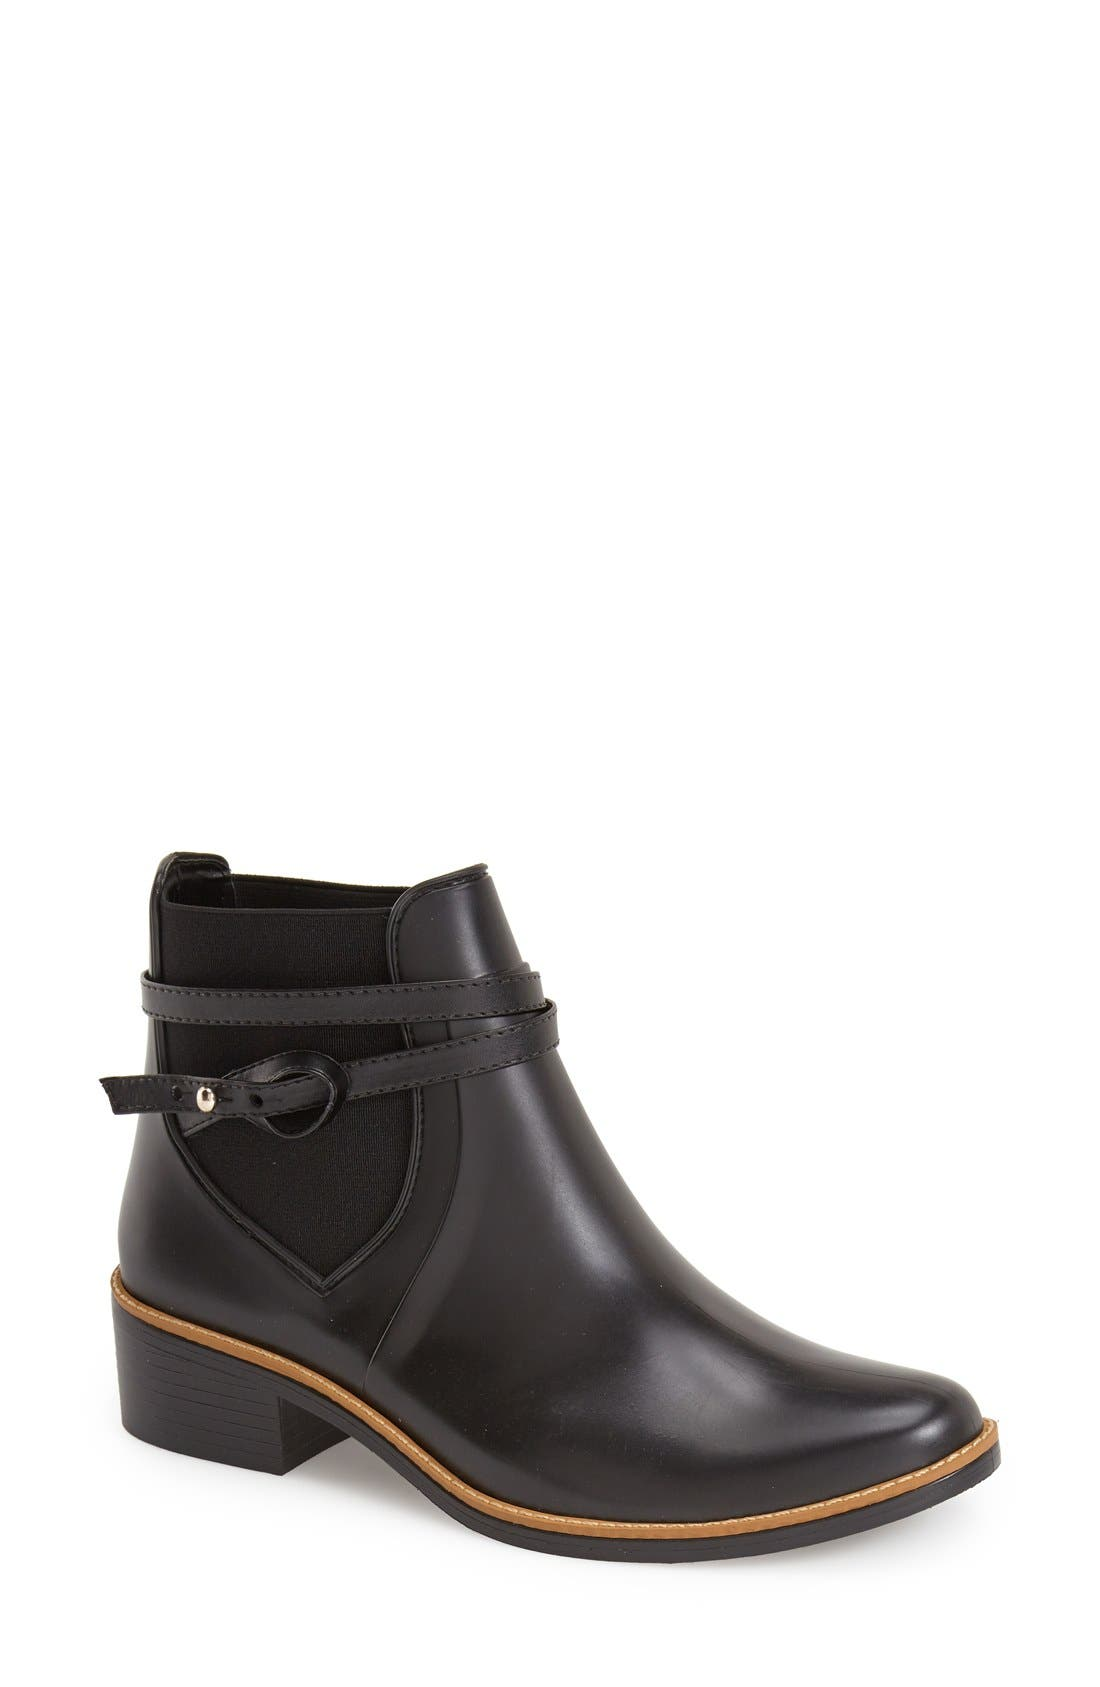 Bernardo Peony Short Waterproof Rain Boot (Women)